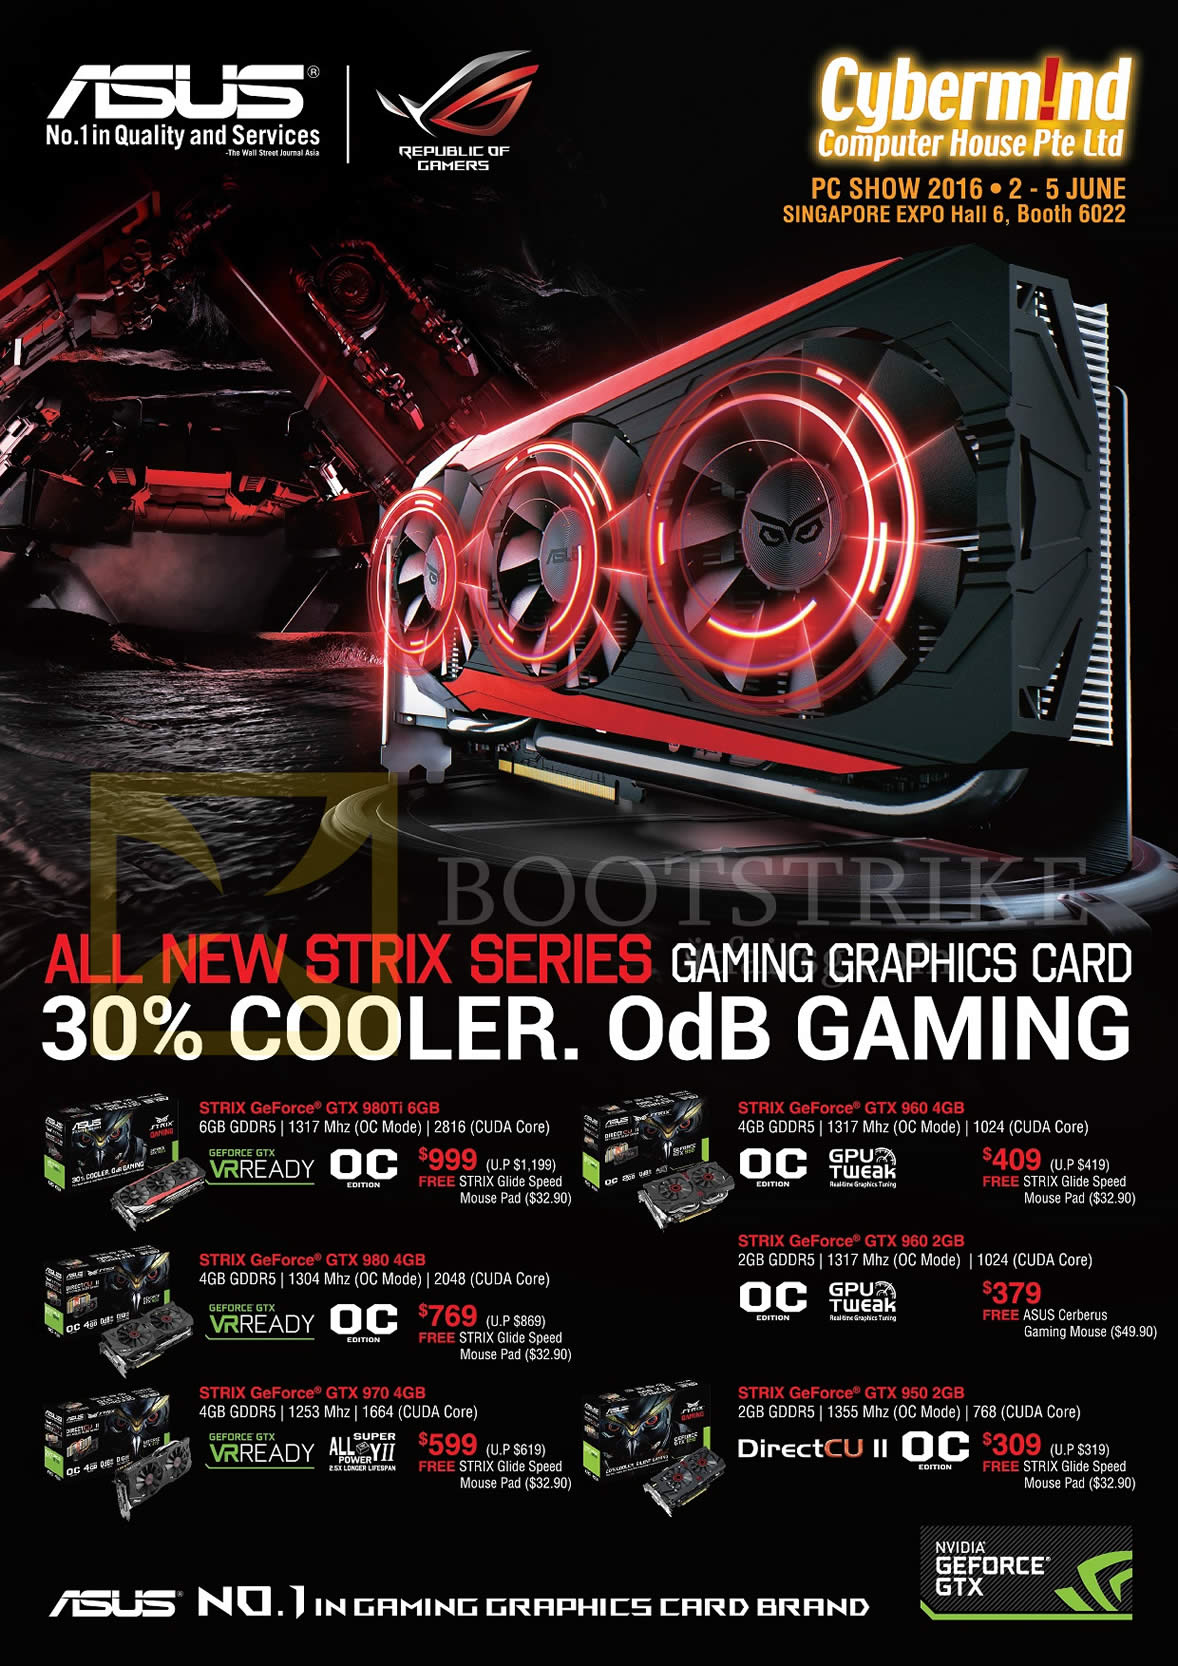 PC SHOW 2016 price list image brochure of ASUS Graphics Video Cards Strix Geforce GTX 980Ti, 980, 970, 960, 950